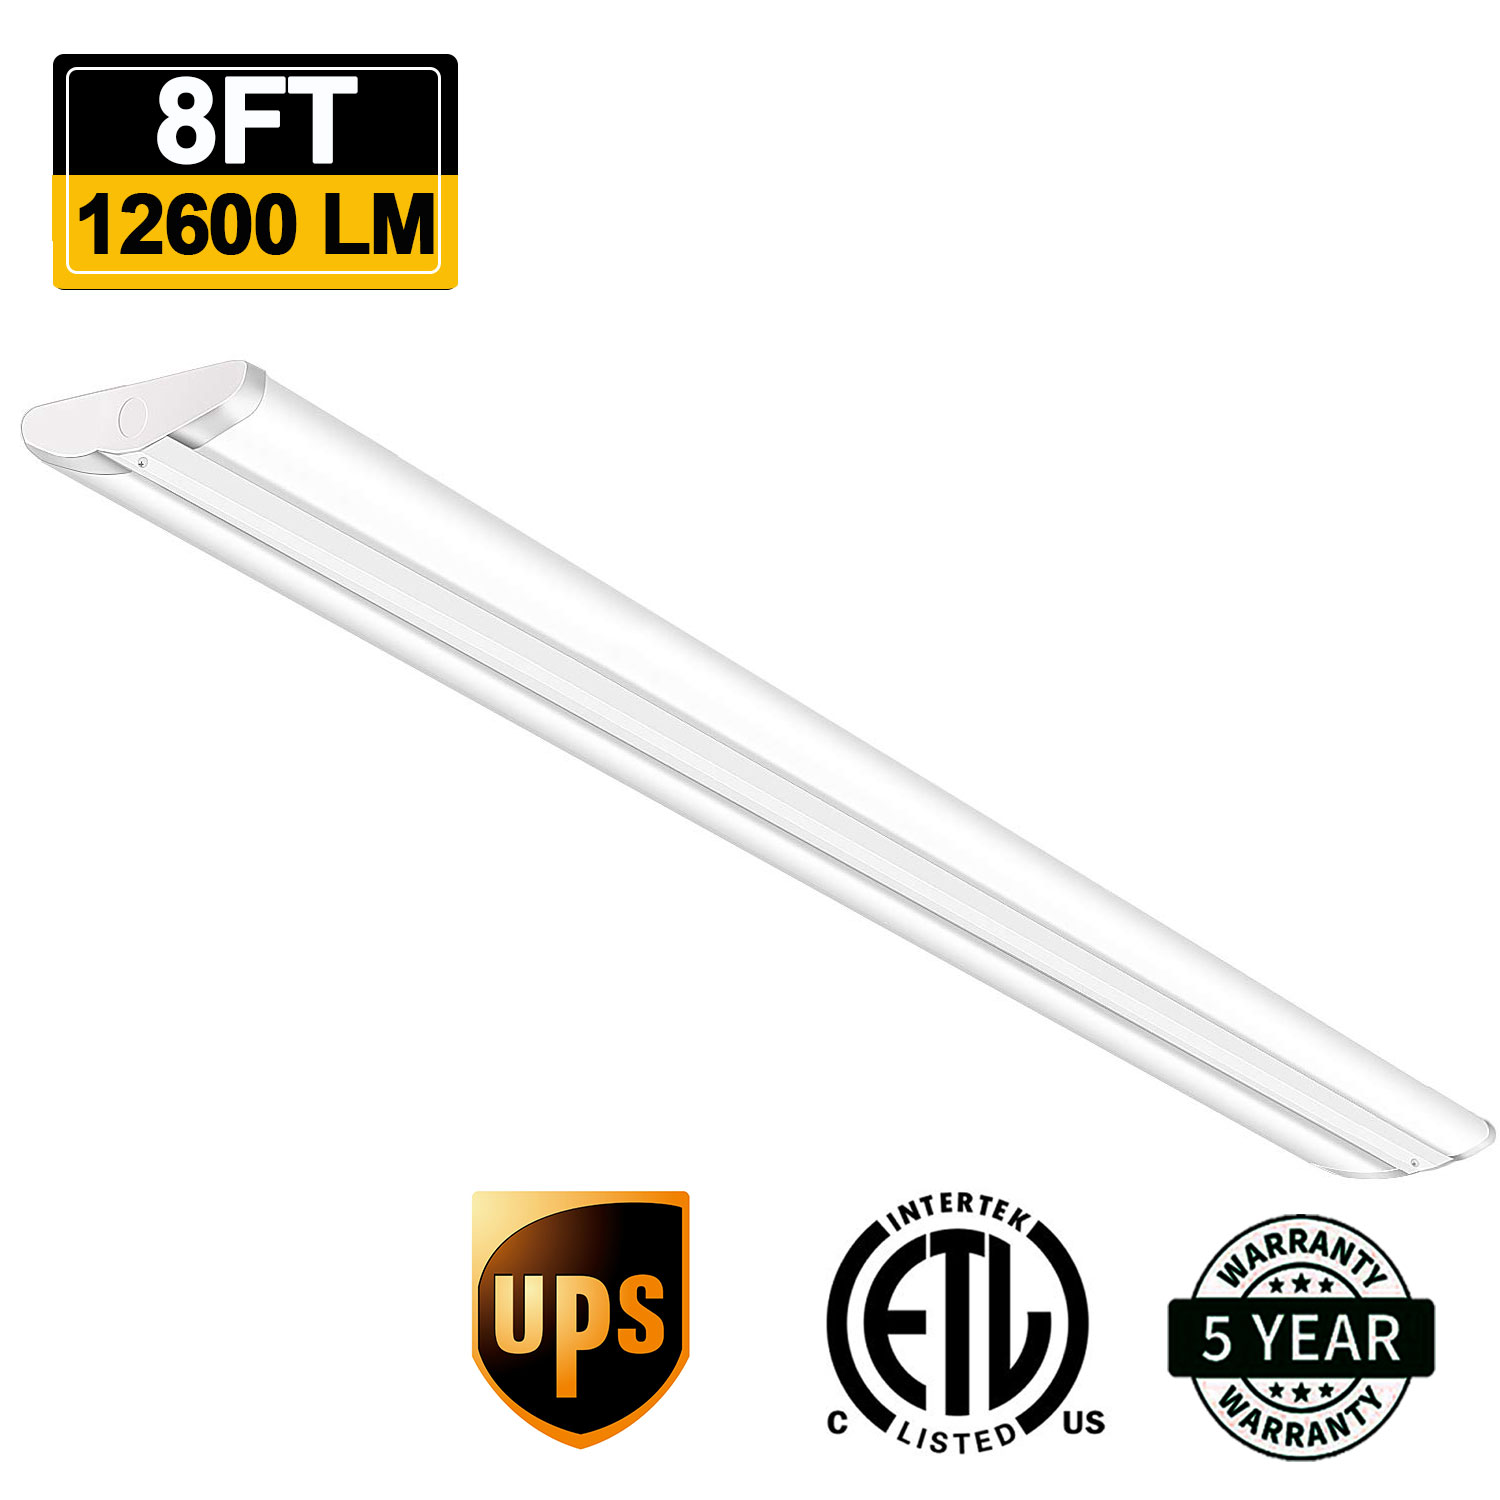 8 Ft 2 Lamp Fluorescent Strip Light White No Ssf2964wp 8ft: 110W LED Wrap Light 8FT Flush Mount Office Ceiling